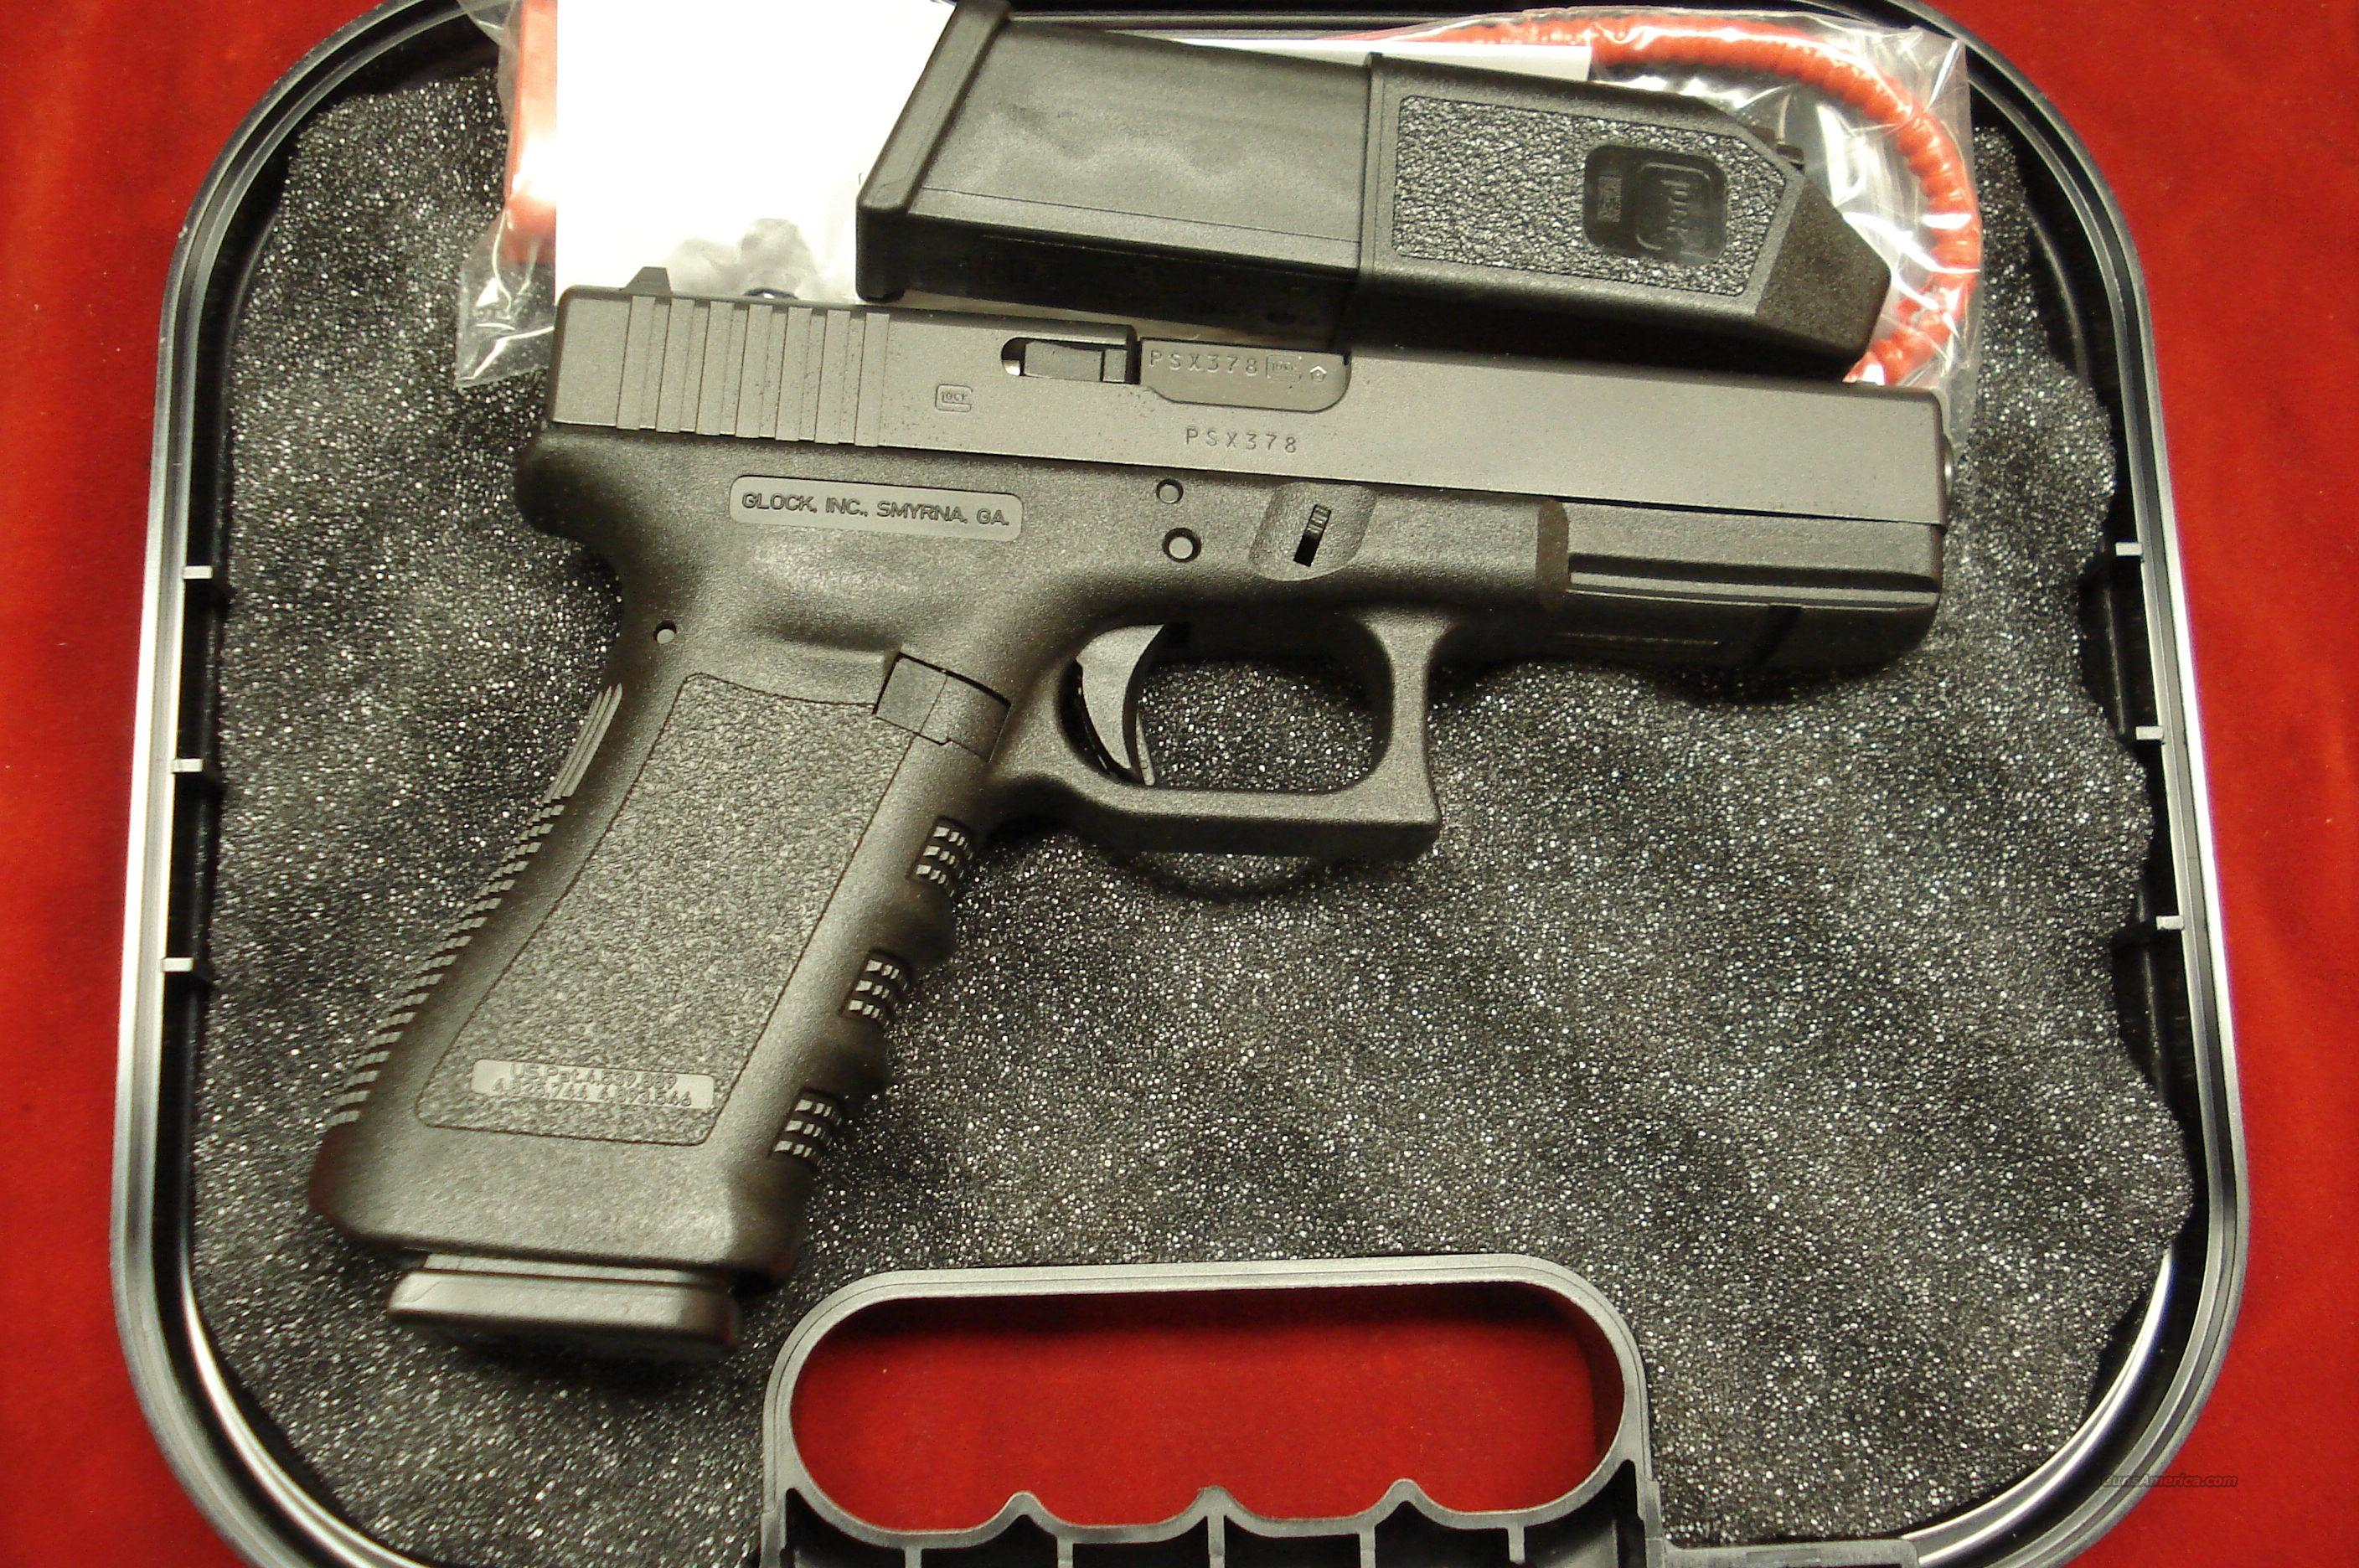 GLOCK MODEL 22 40 CAL. WITH  HIGH CAPACITY MAGAZINES NEW  Guns > Pistols > Glock Pistols > 22